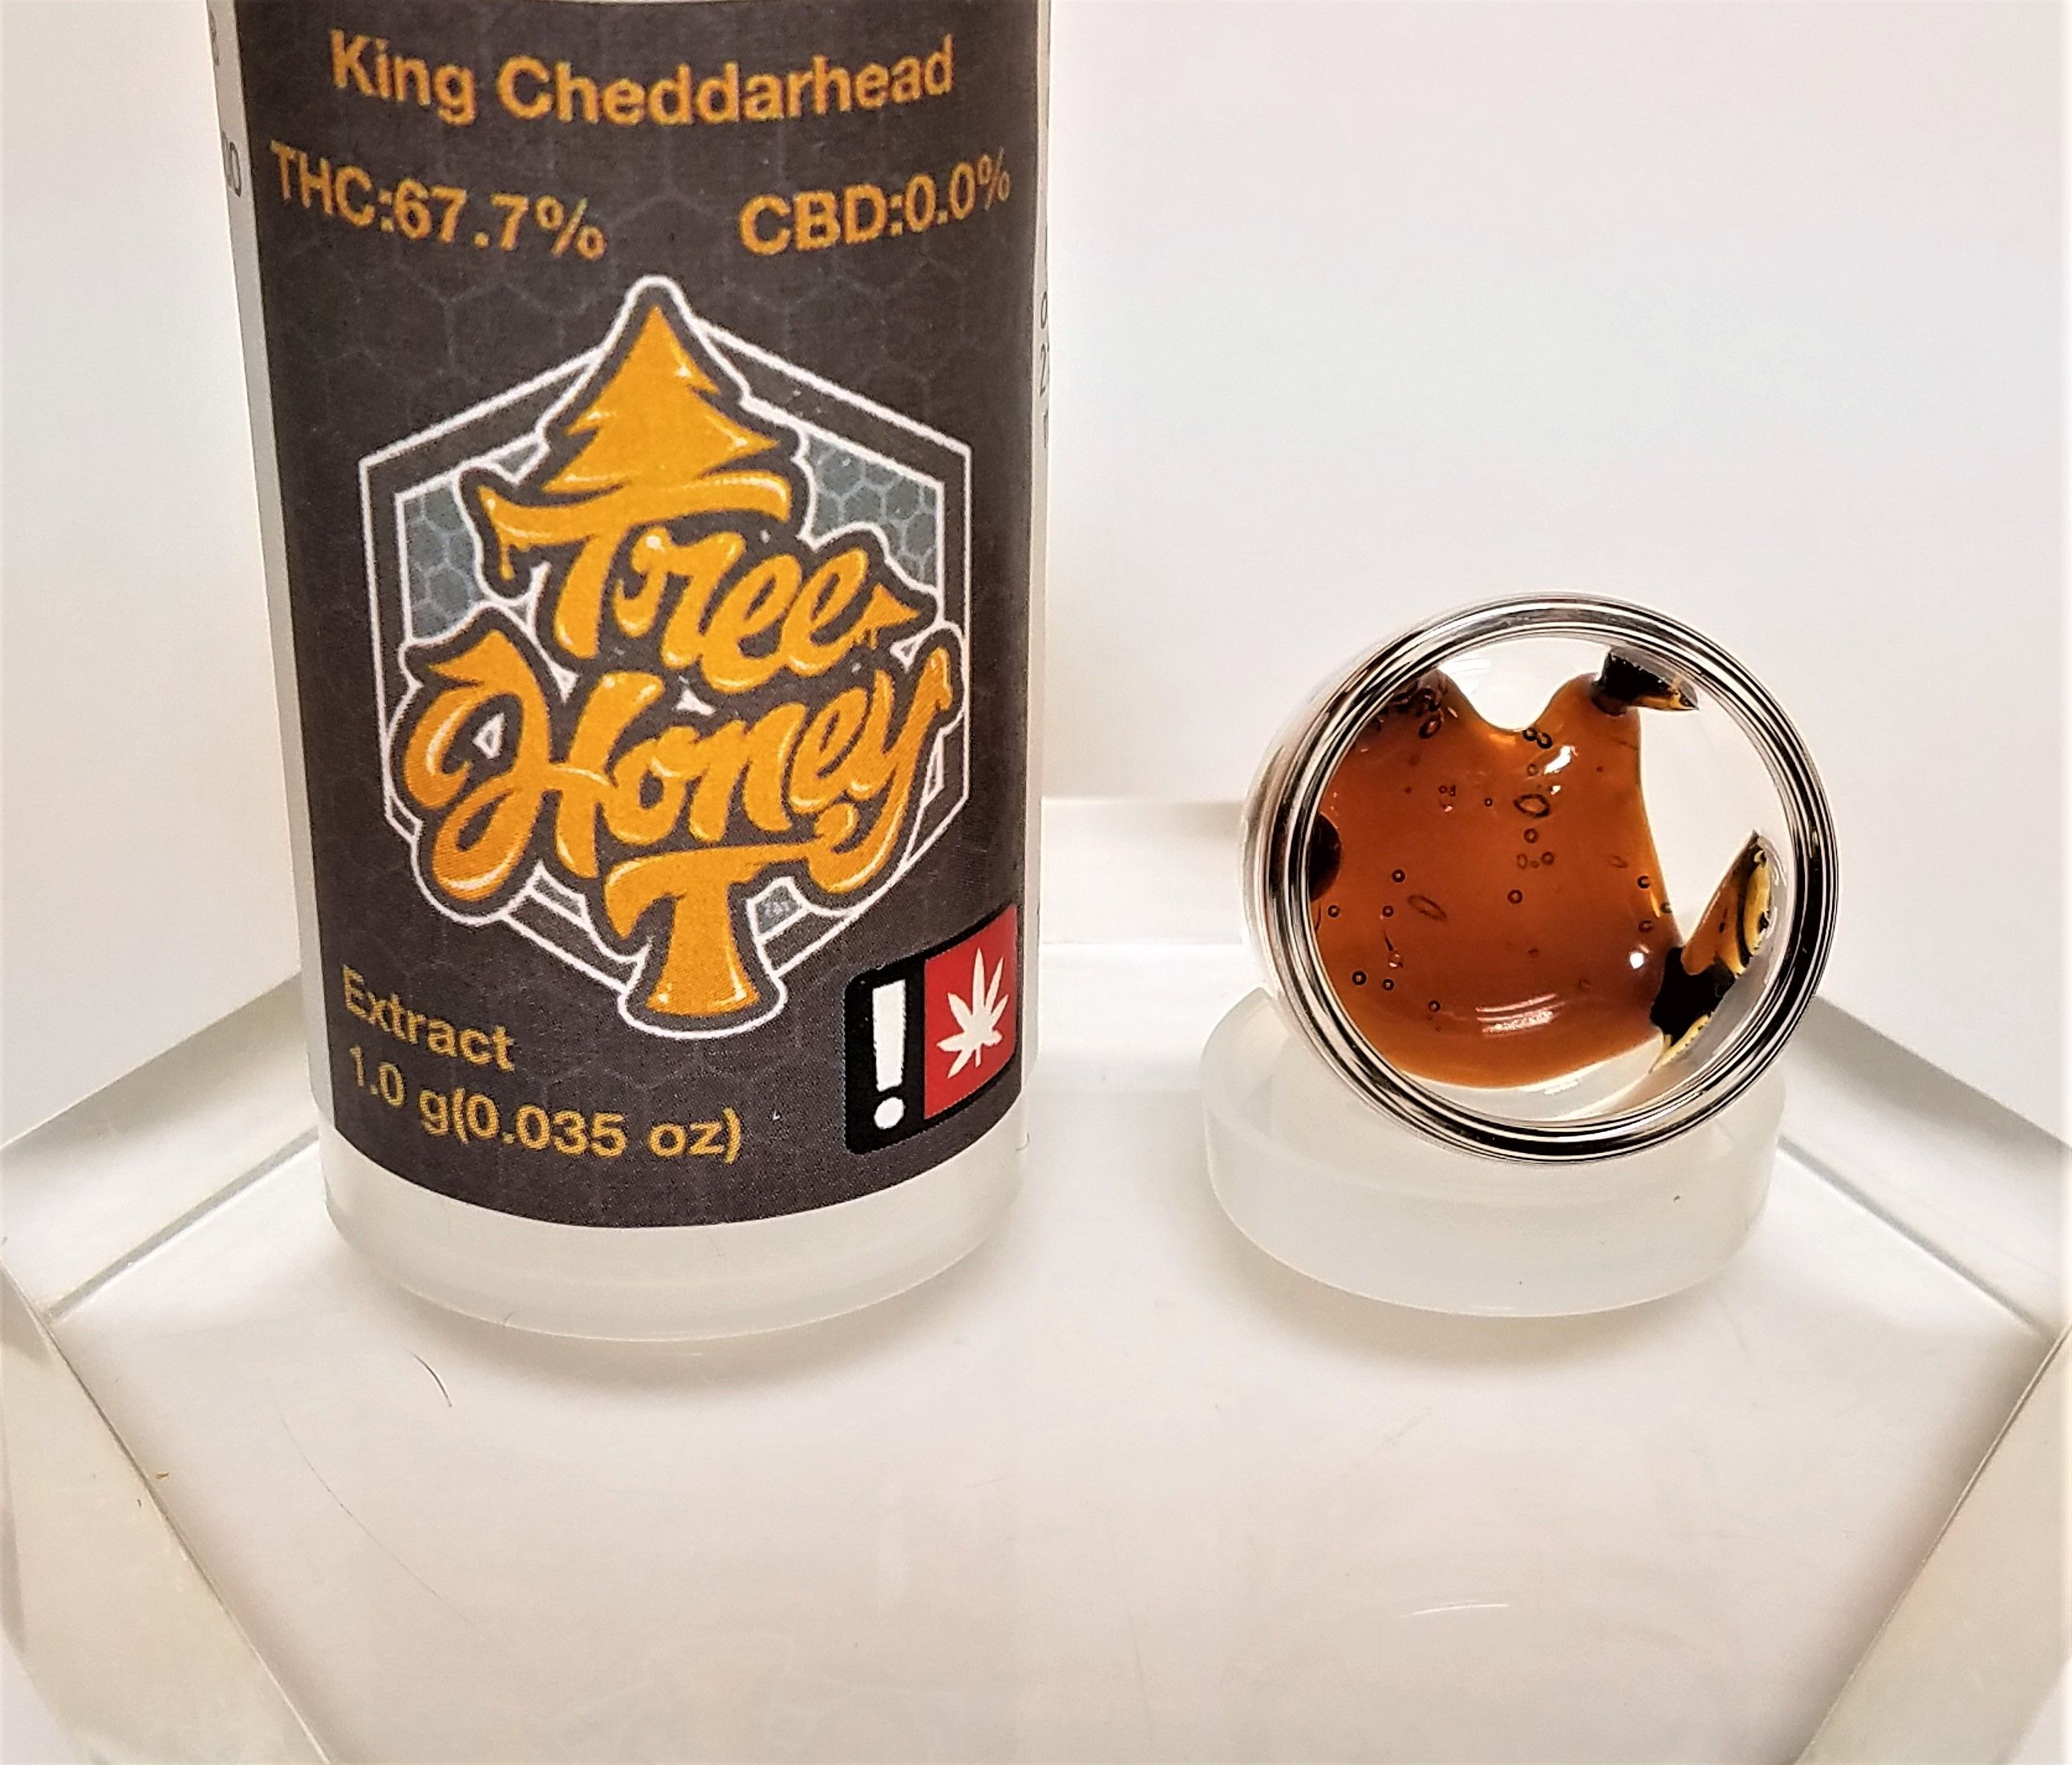 Tree Honey - King Cheddarhead Pull 'n' Snap